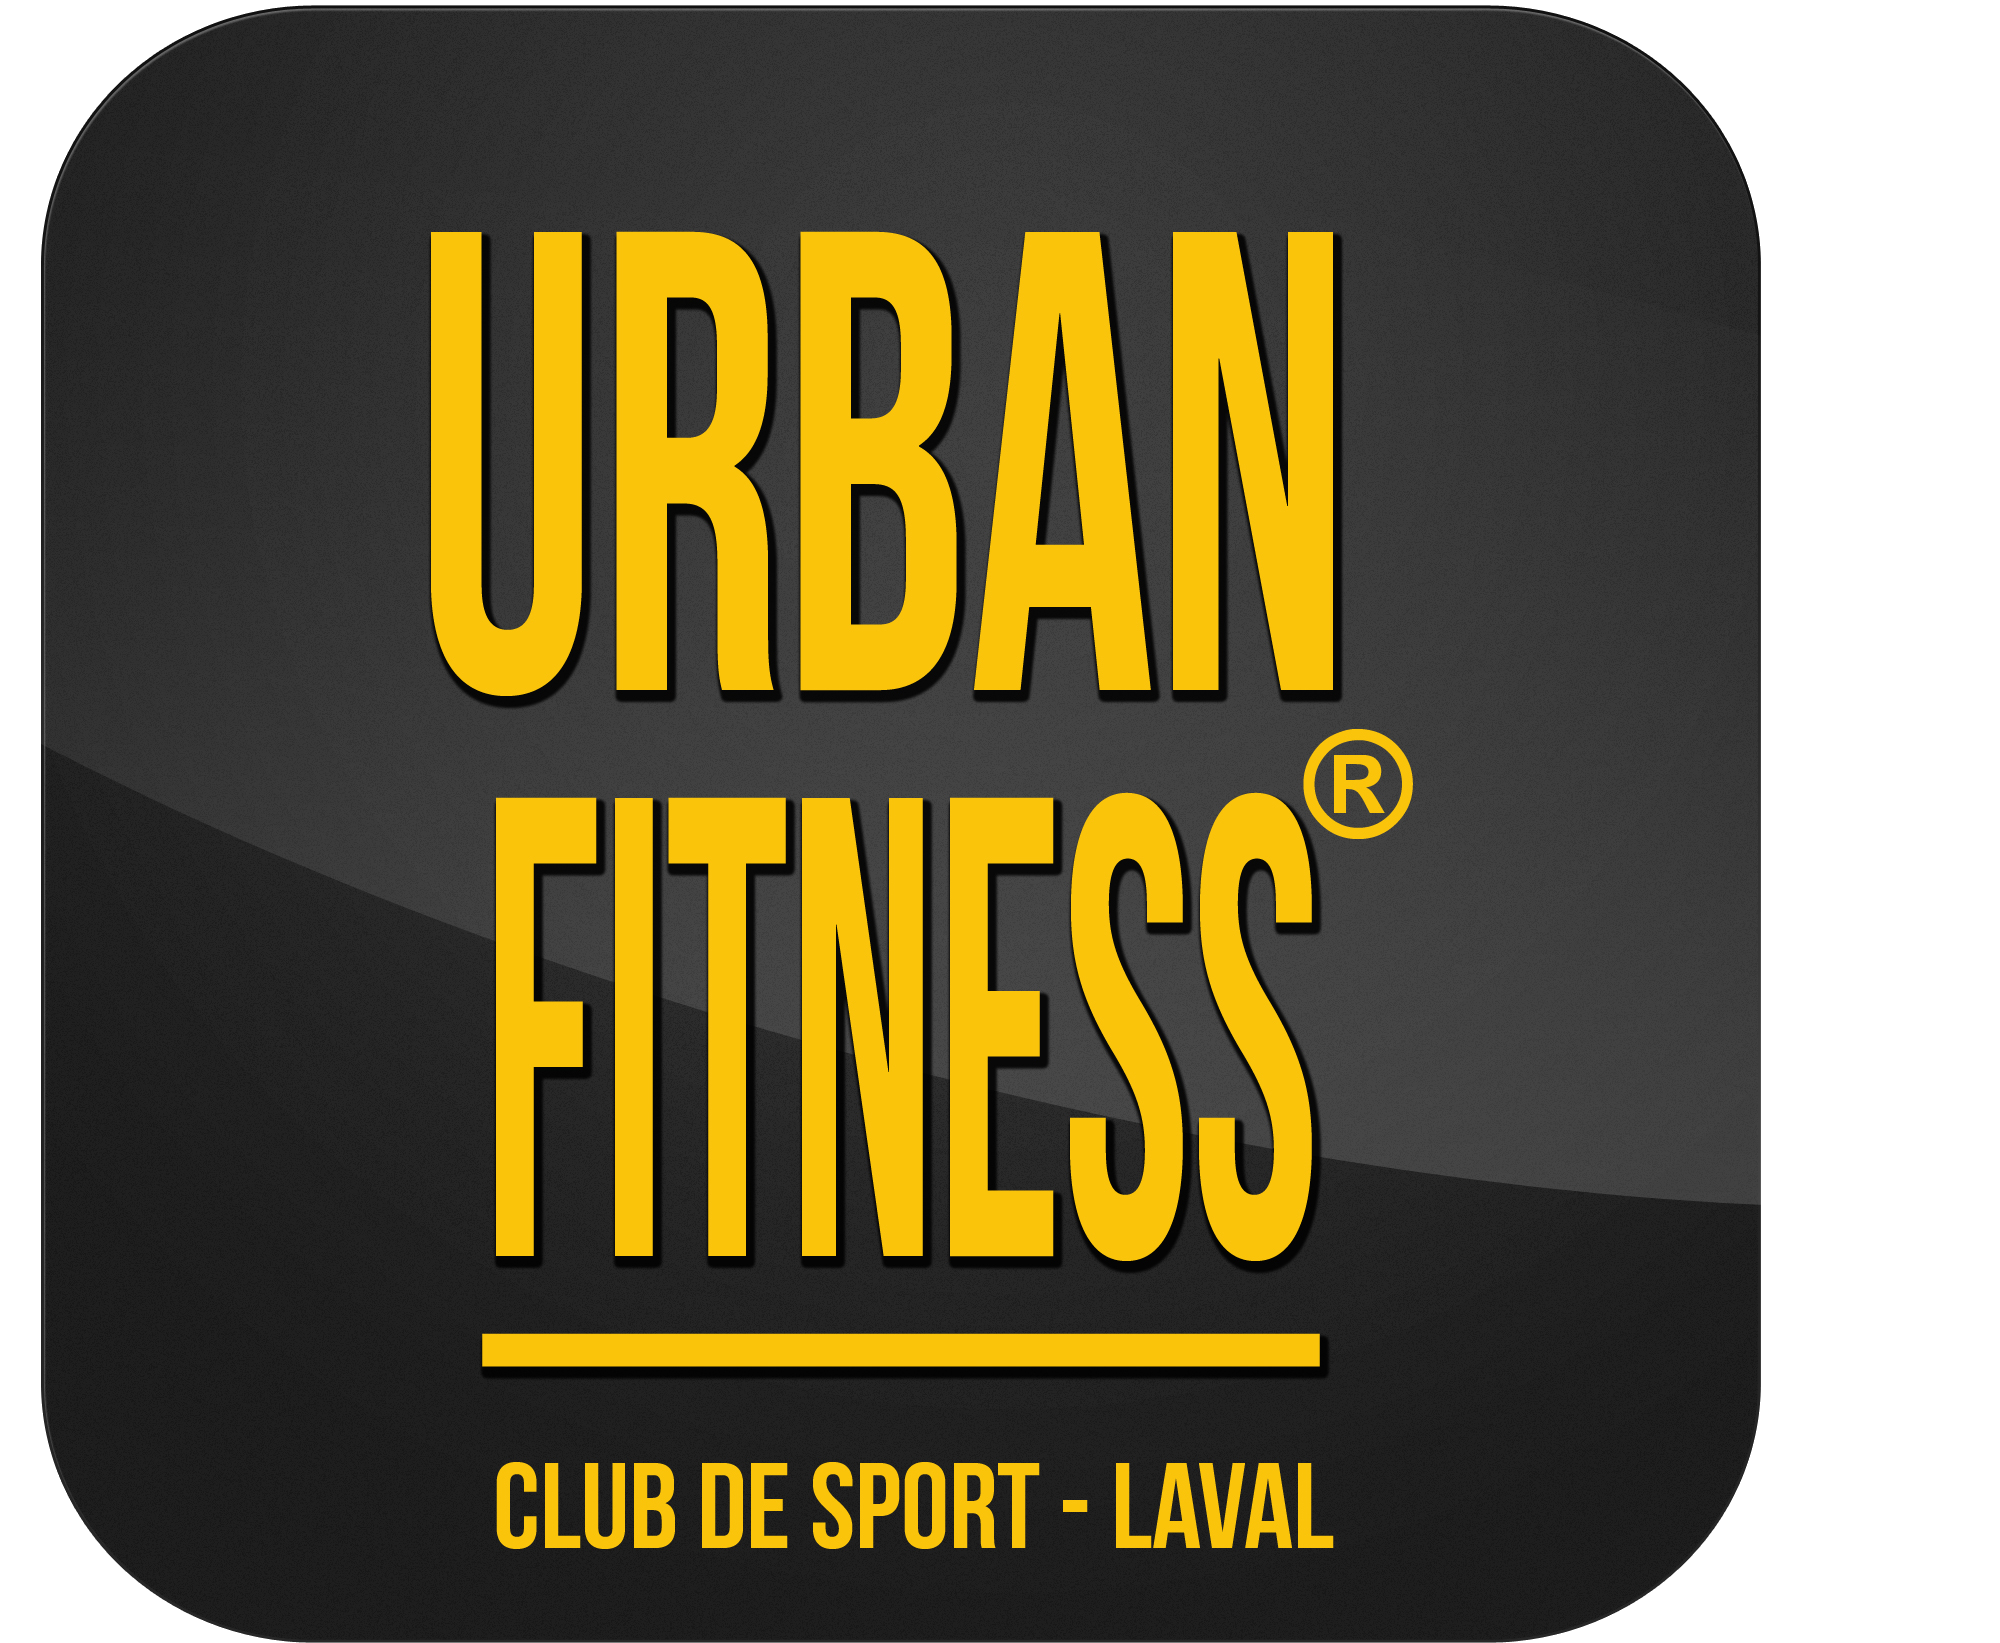 urbanfitness votre salle de sport laval. Black Bedroom Furniture Sets. Home Design Ideas